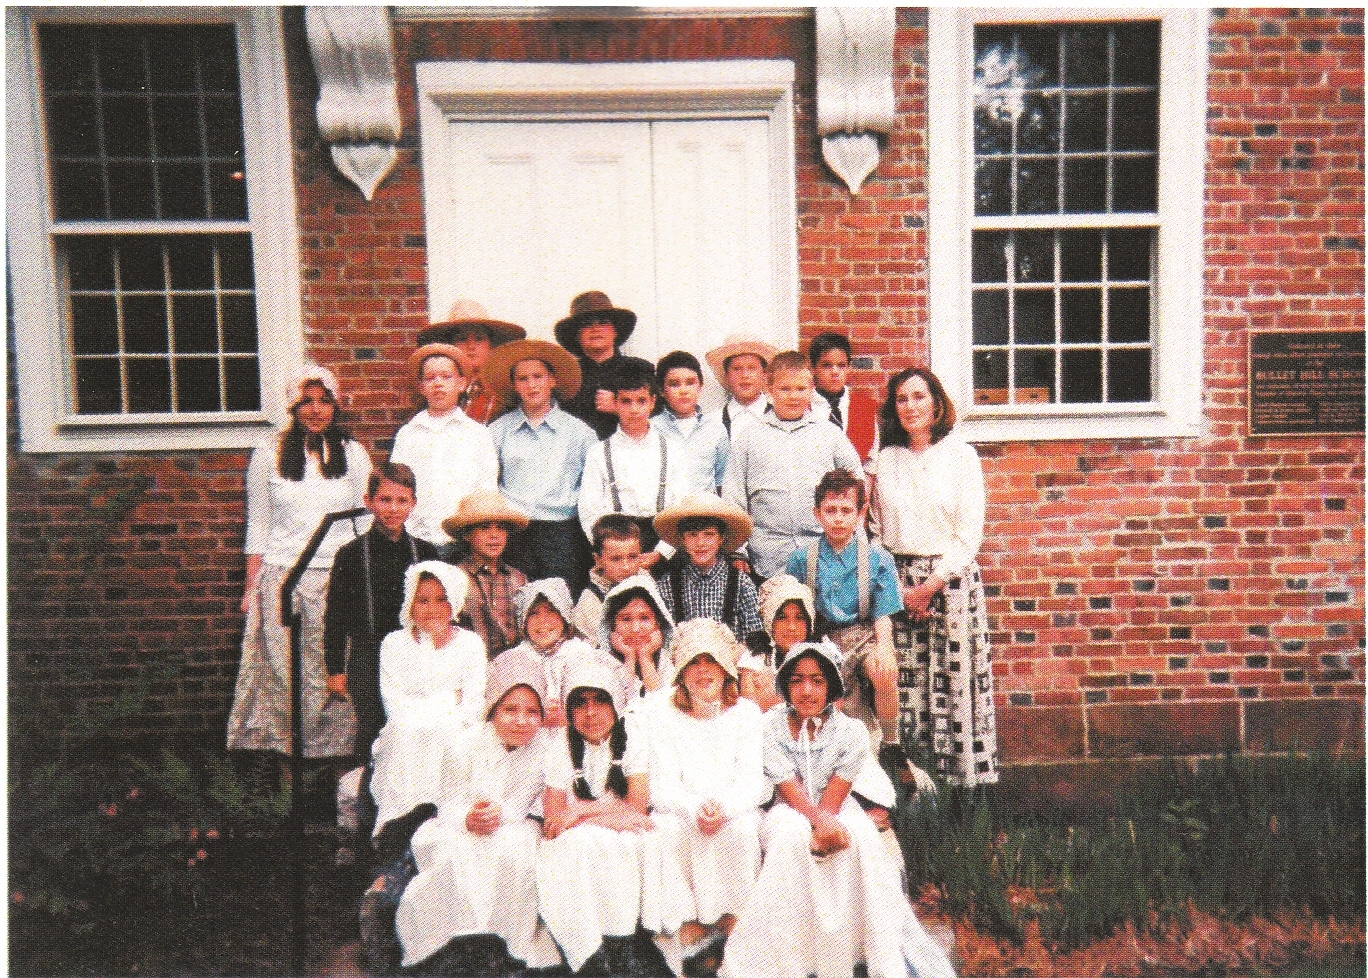 The Bullet Hill School (1762), a National Register of Historic Places-listed property, is the oldest public building in Southbury. Its living history program lets third graders spend at least a day at the school, where they experience lessons appropriate to the 1800s.